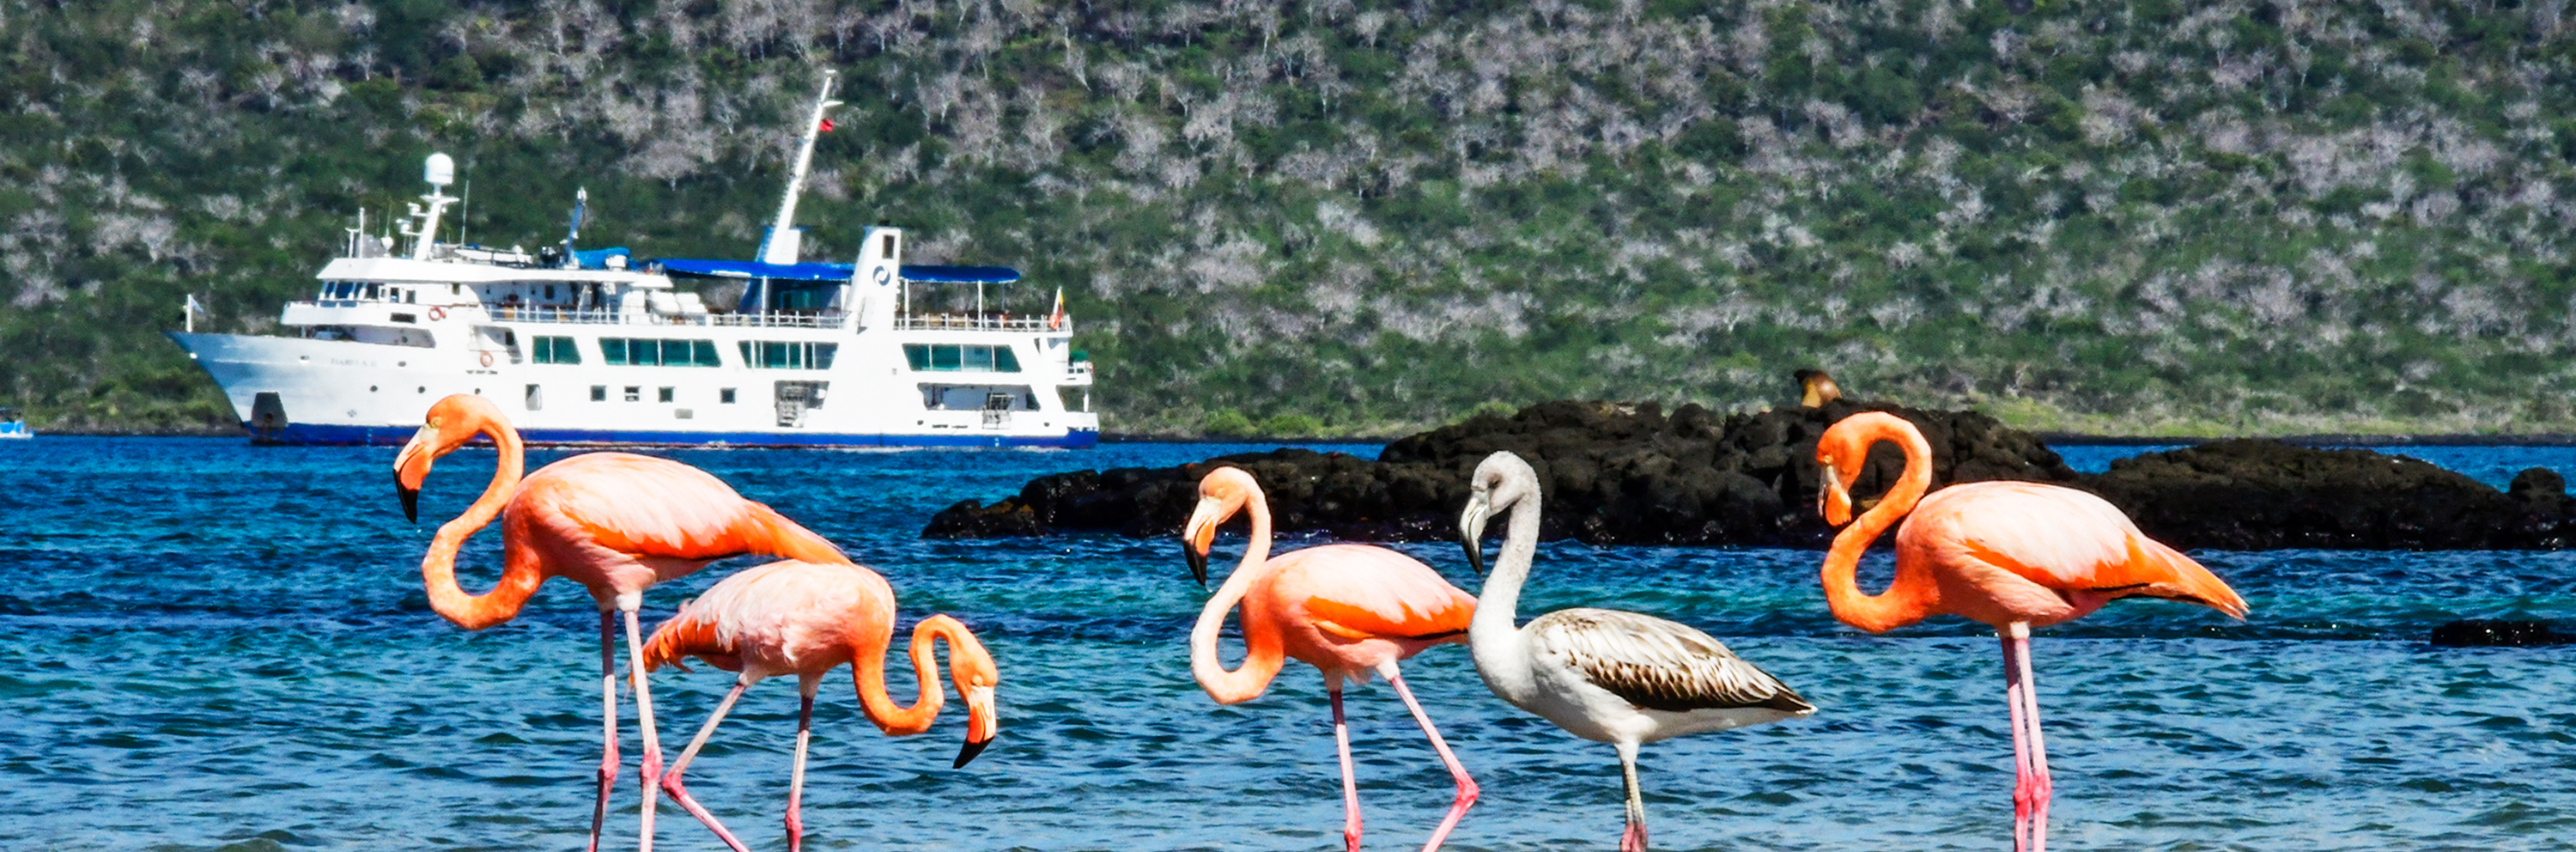 Galapagos Islands aboard Yacht Isabela II - Islands - Wildlife - Activities